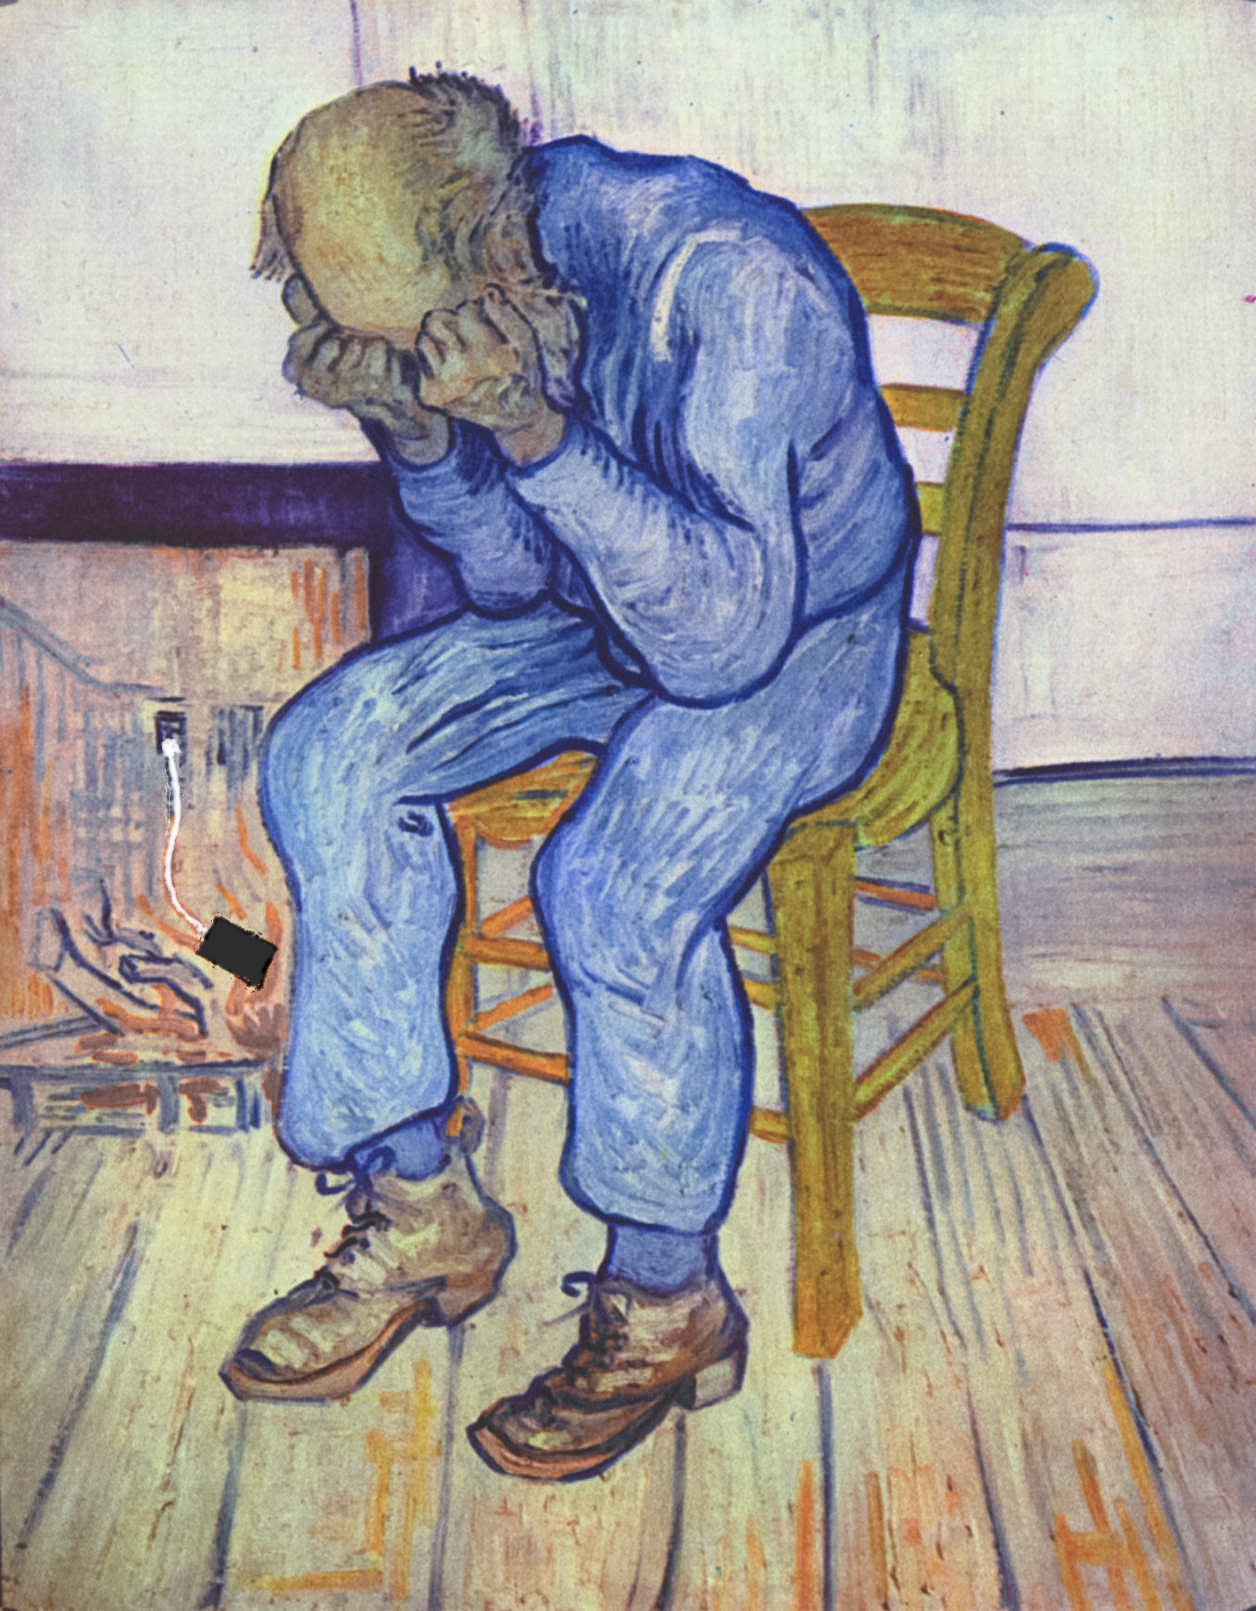 a humorous play on van Gogh's at eternity's gate of a man with hands on his face in anguish as his dead phone is charging